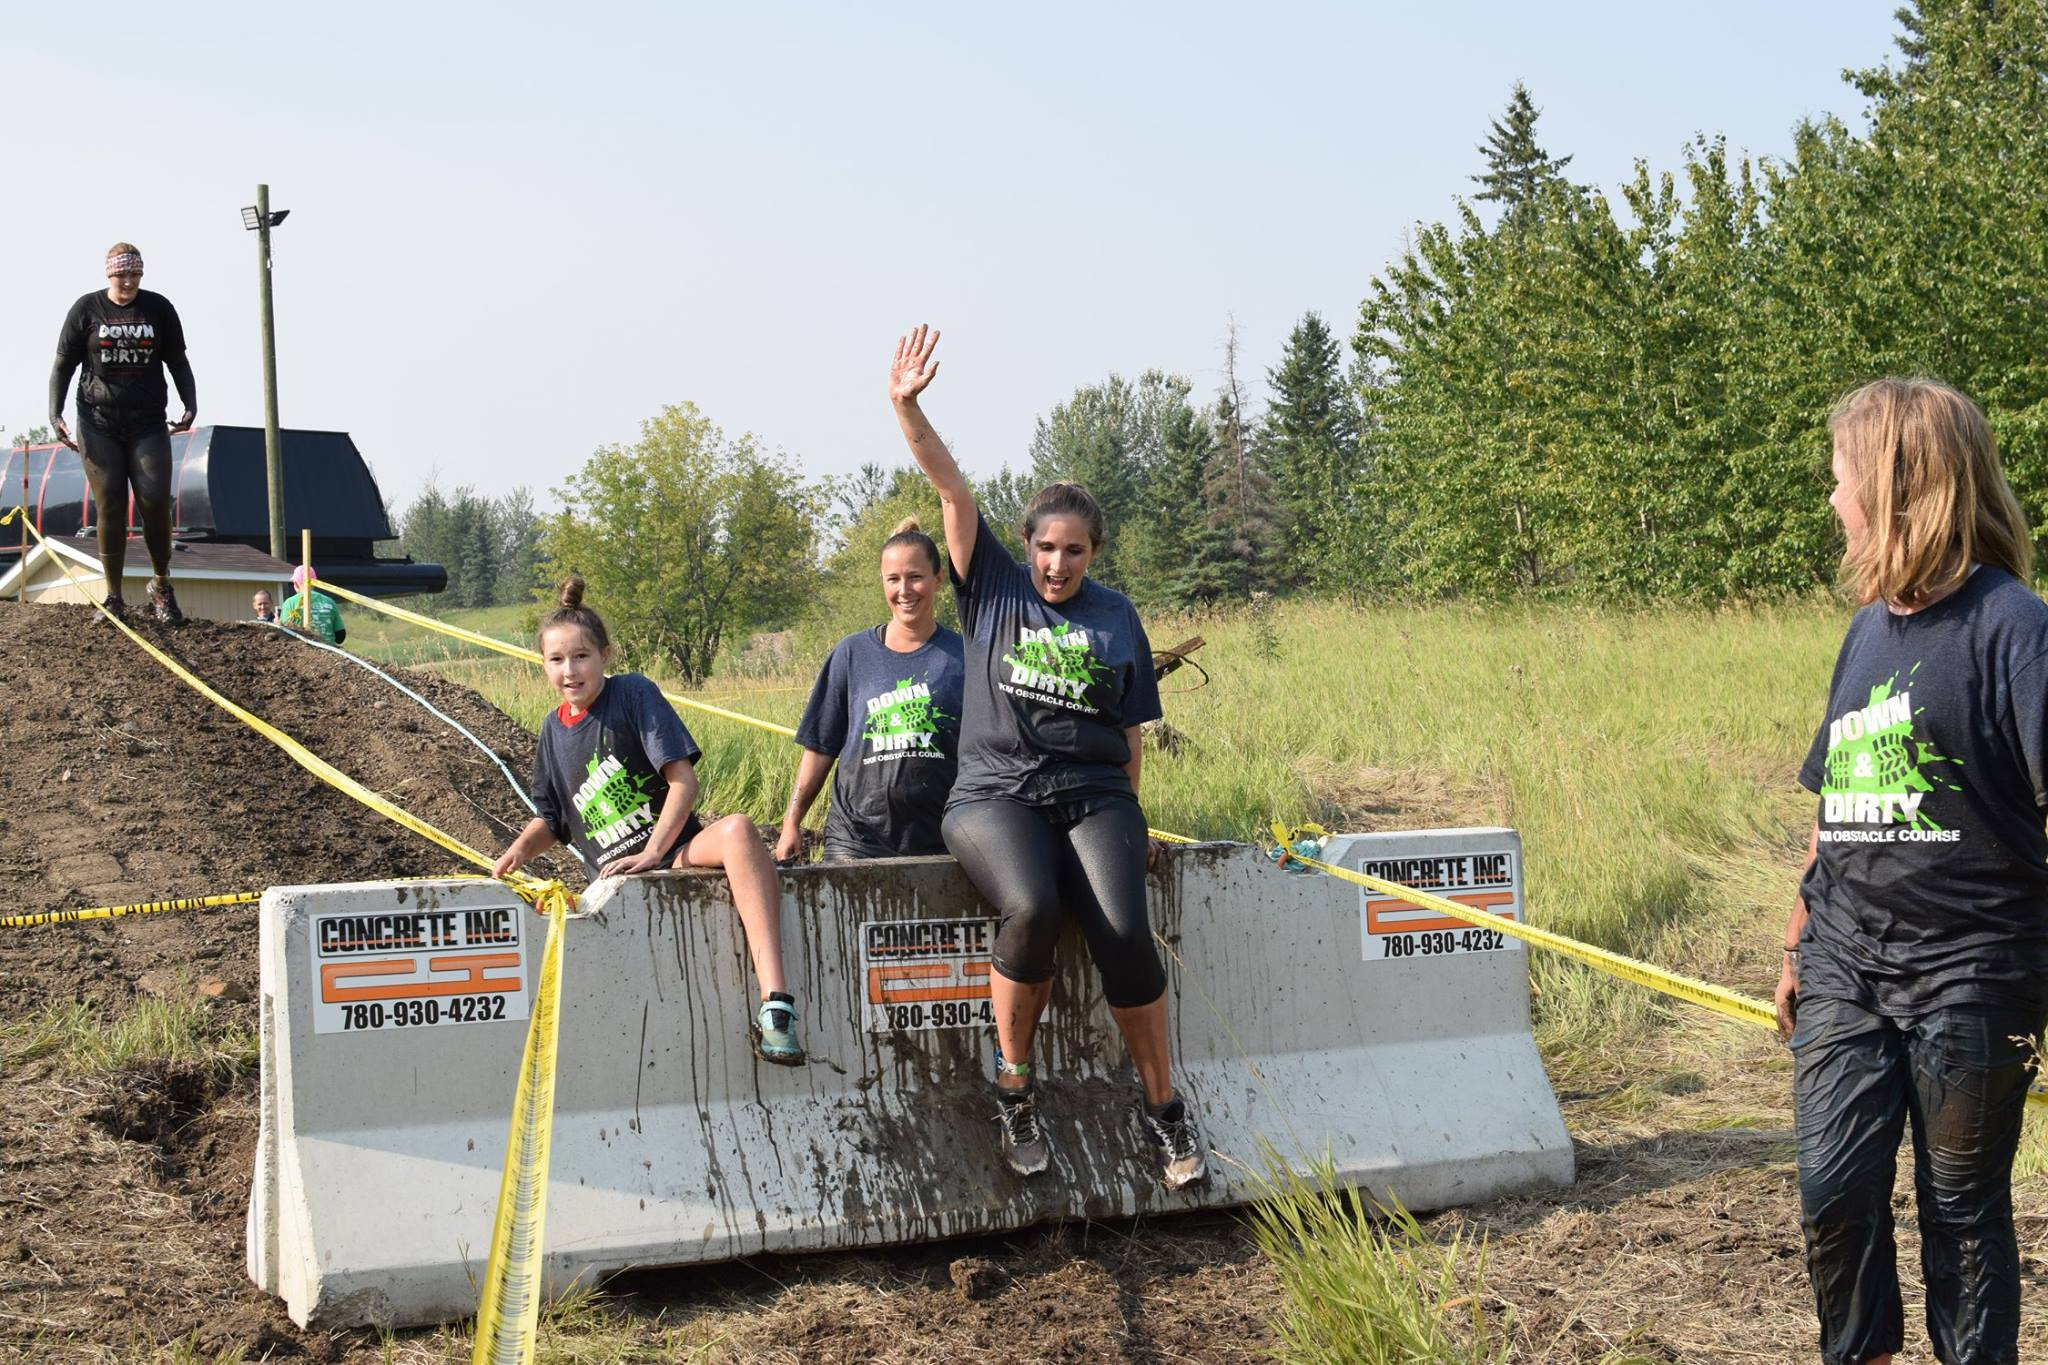 Down & Dirty 5KM Obstacle Course @ Sunridge Ski Area